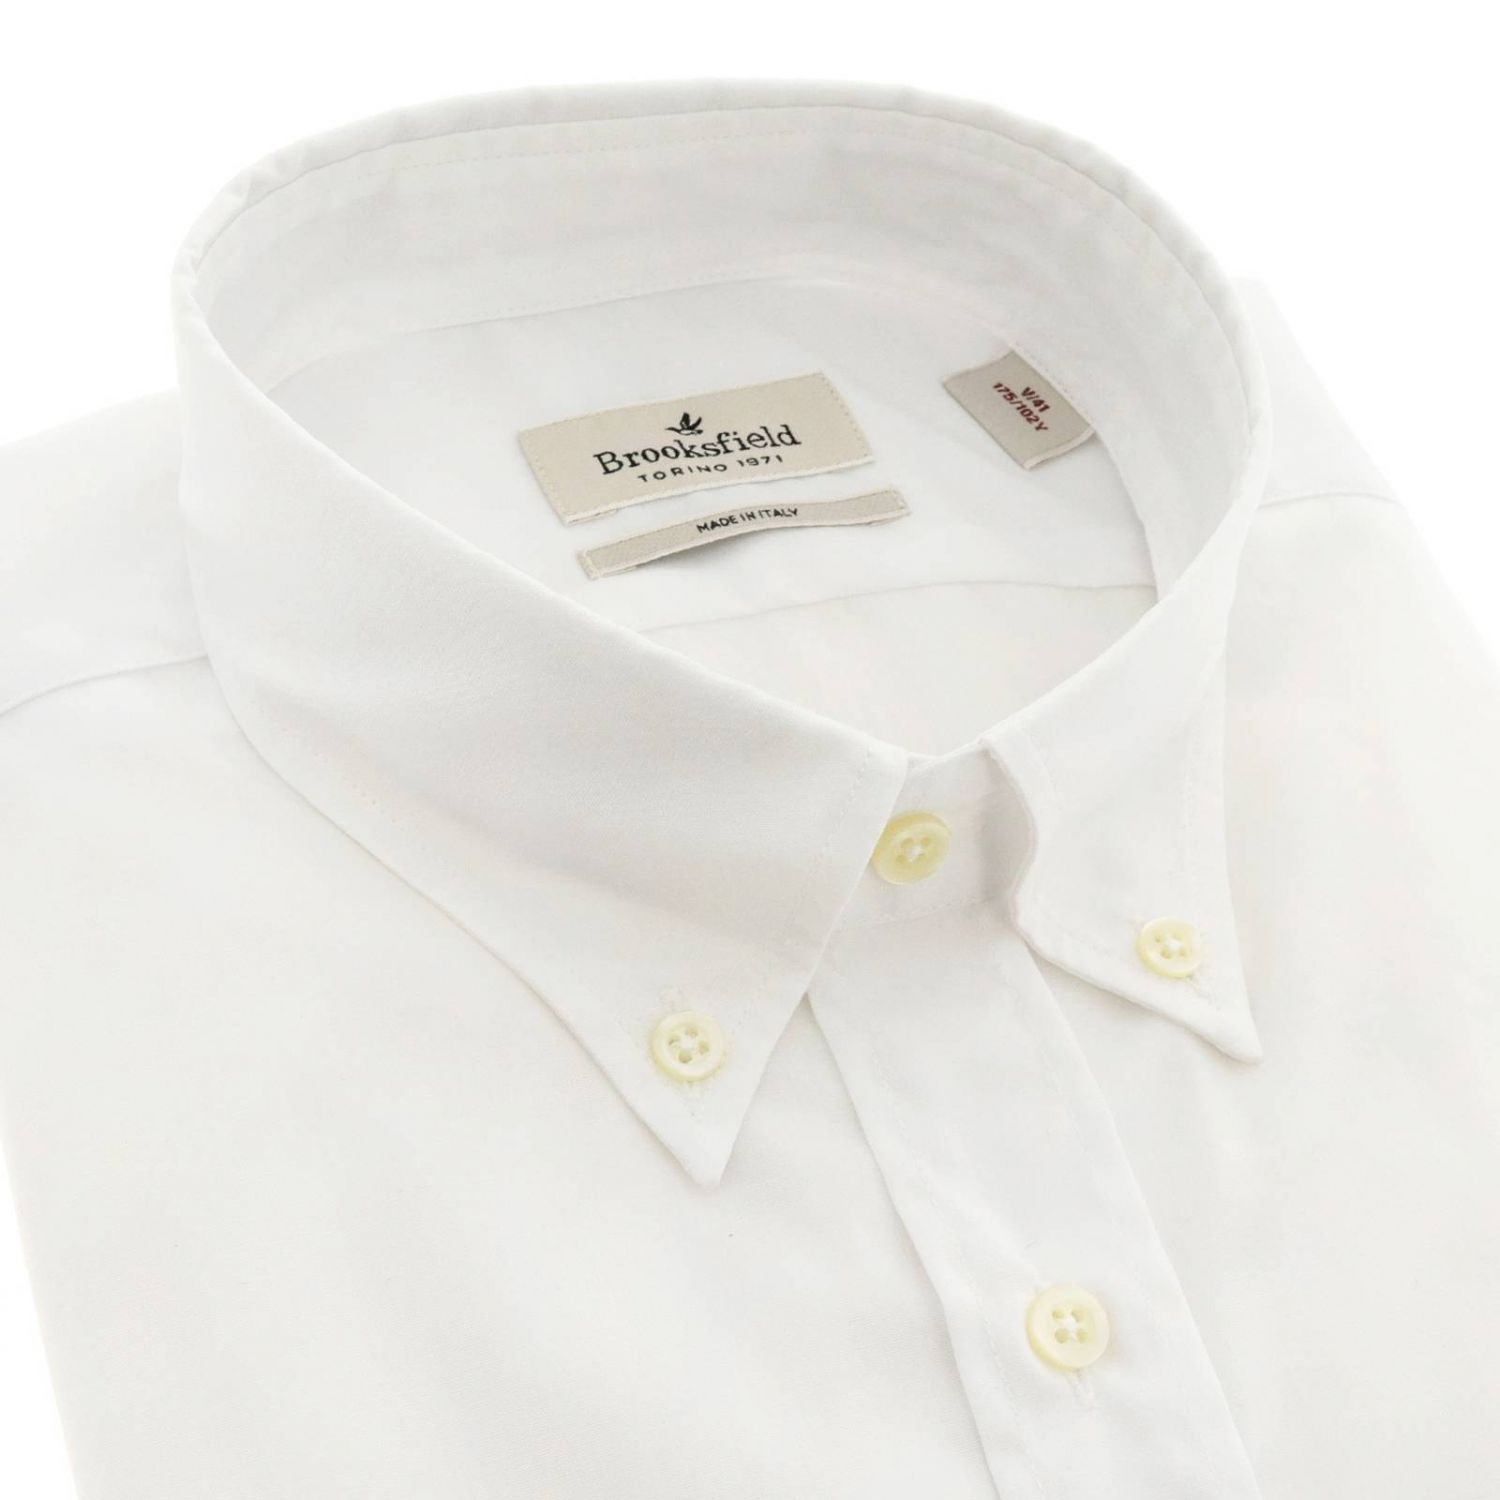 Shirt men Brooksfield white 2